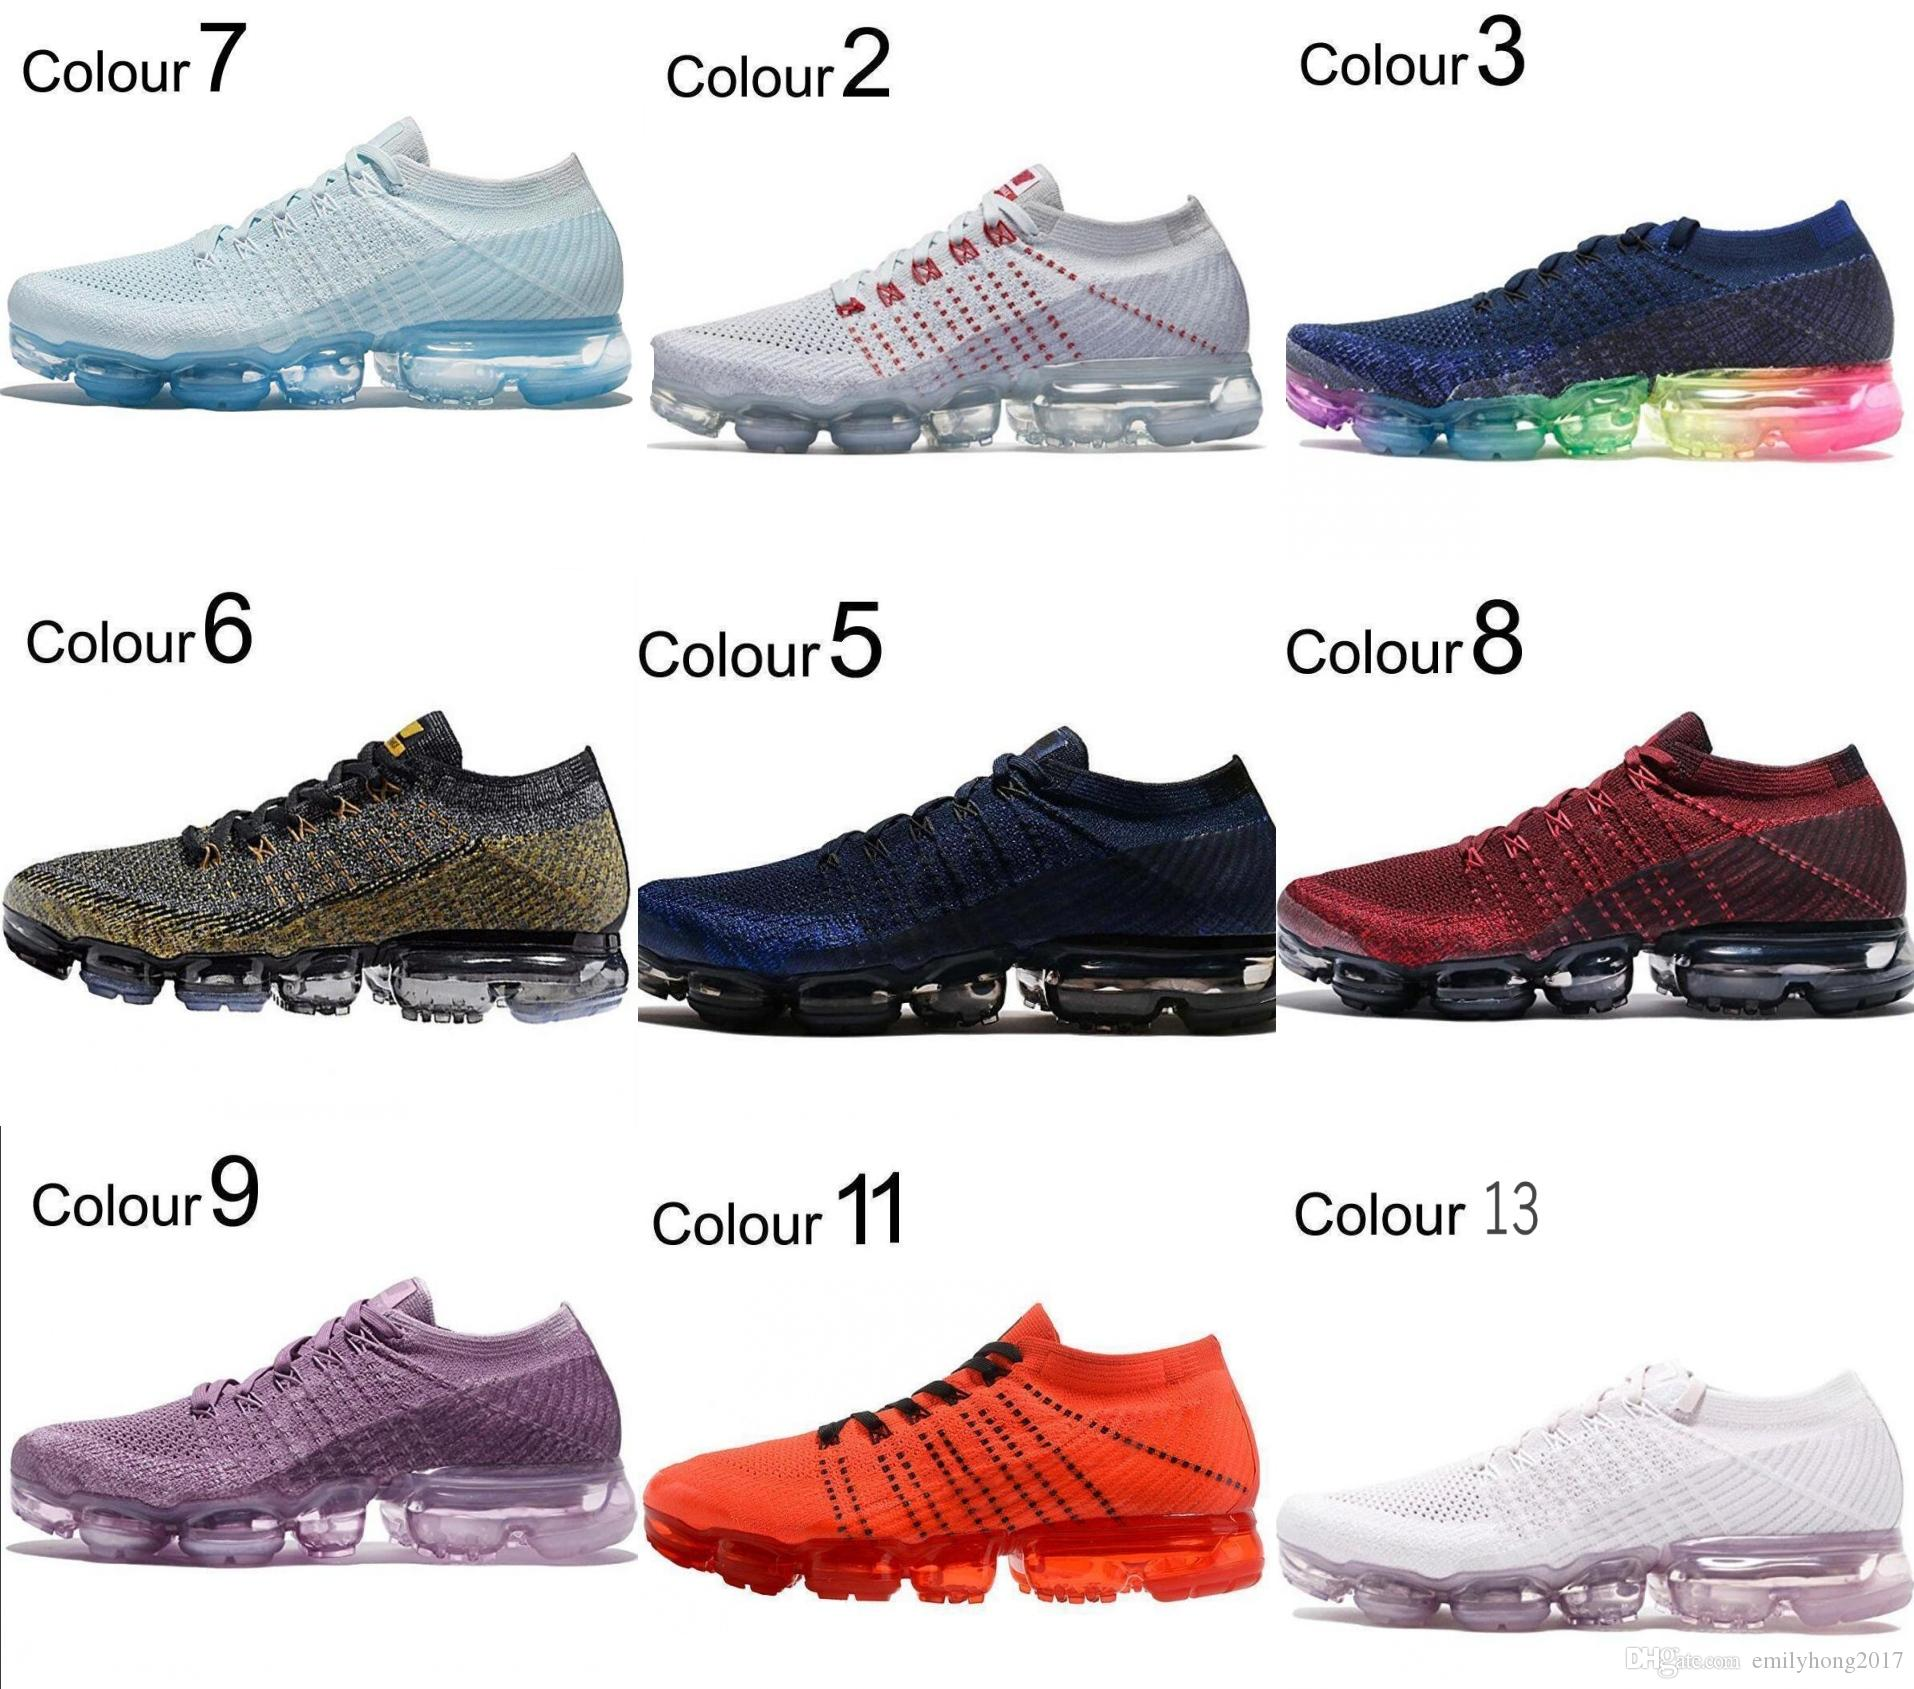 06ea9906f 2018 New Fashion Casual Mens Shoes For Men Sneakers Women Fashion Athletic  Sport Shoe Hot Corss Hiking Jogging Walking Outdoor Shoes Prom Shoes Sperry  Shoes ...